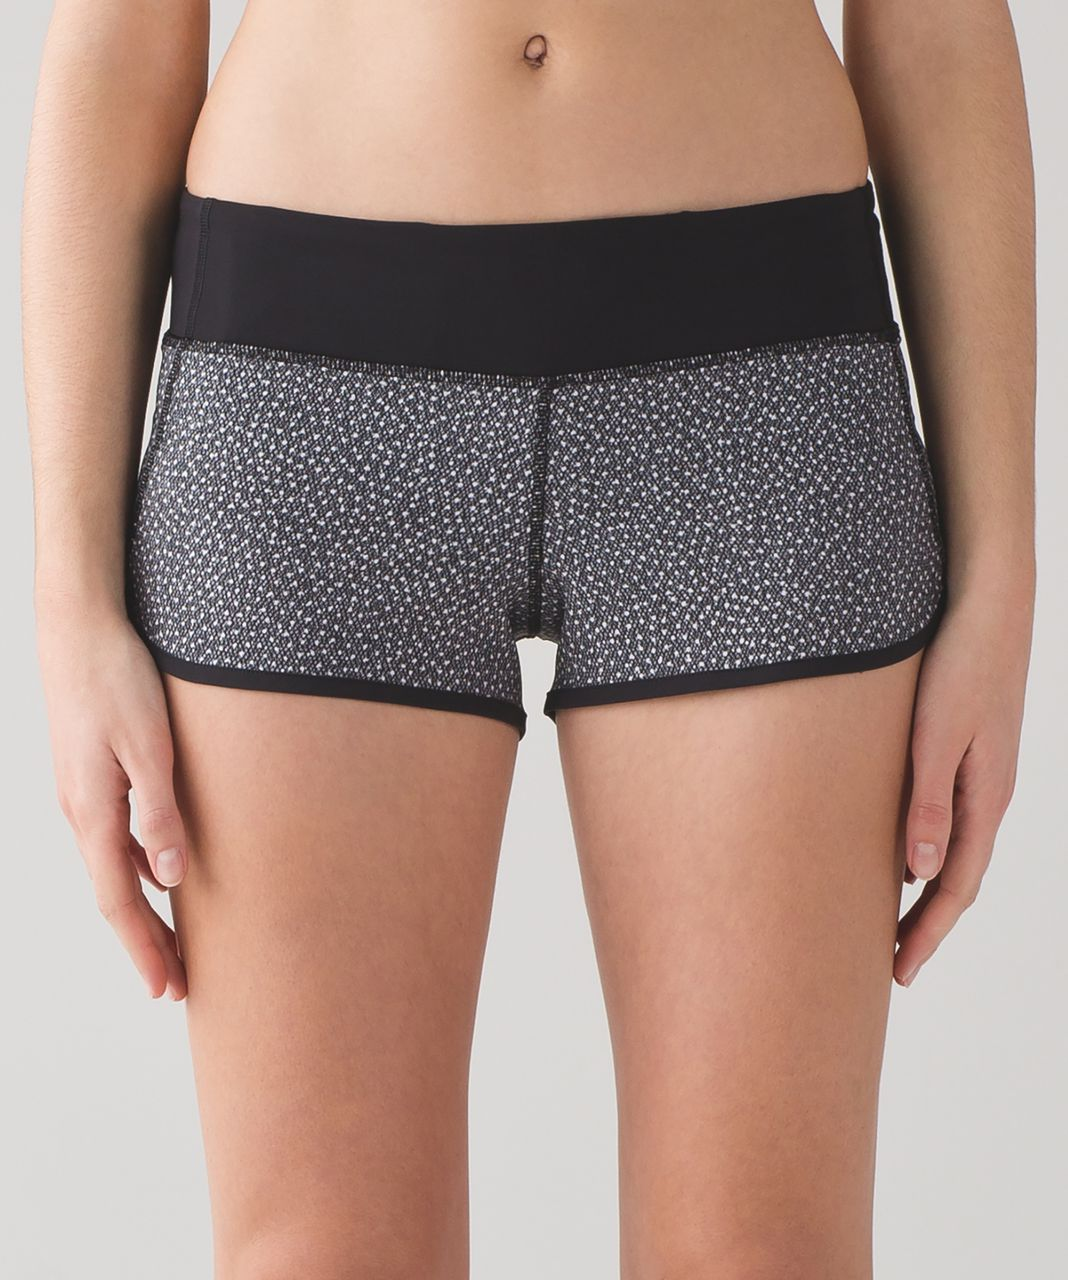 "Lululemon Speed Short (4-way Stretch 2 1/2"") - Frozen Fizz White Black / Black"